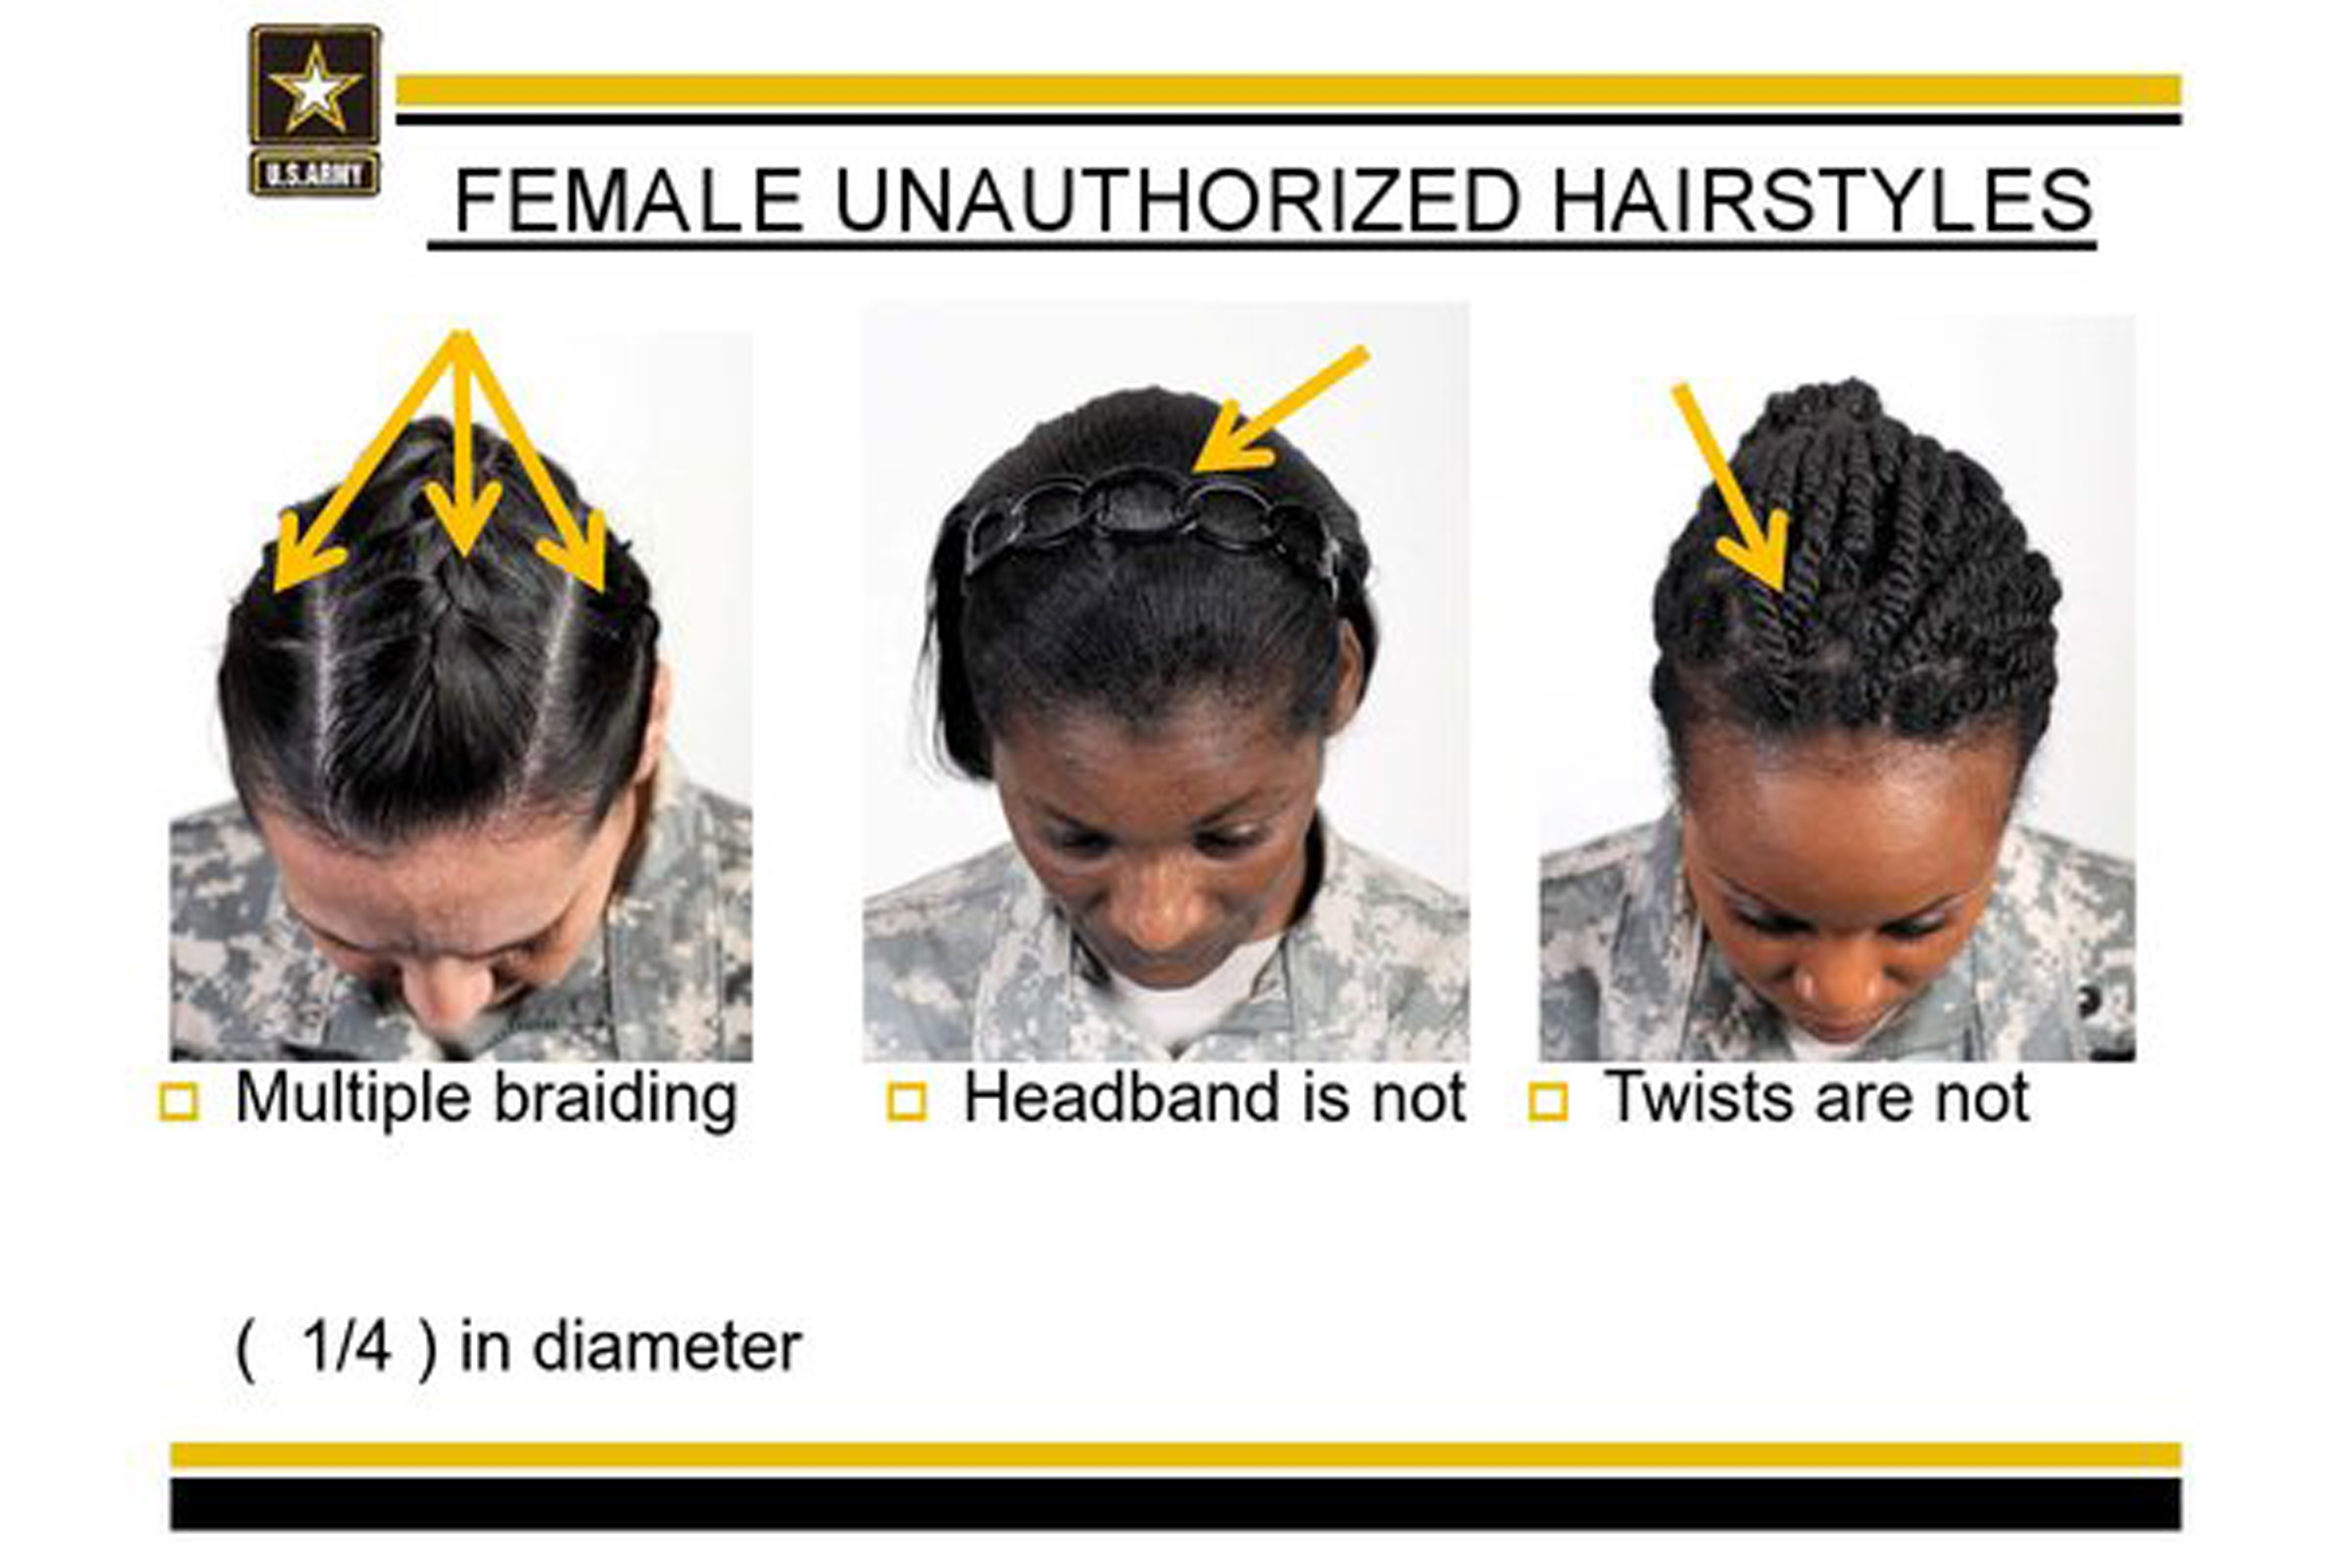 This undated image provided by the US Army shows new Army grooming regulations for females.